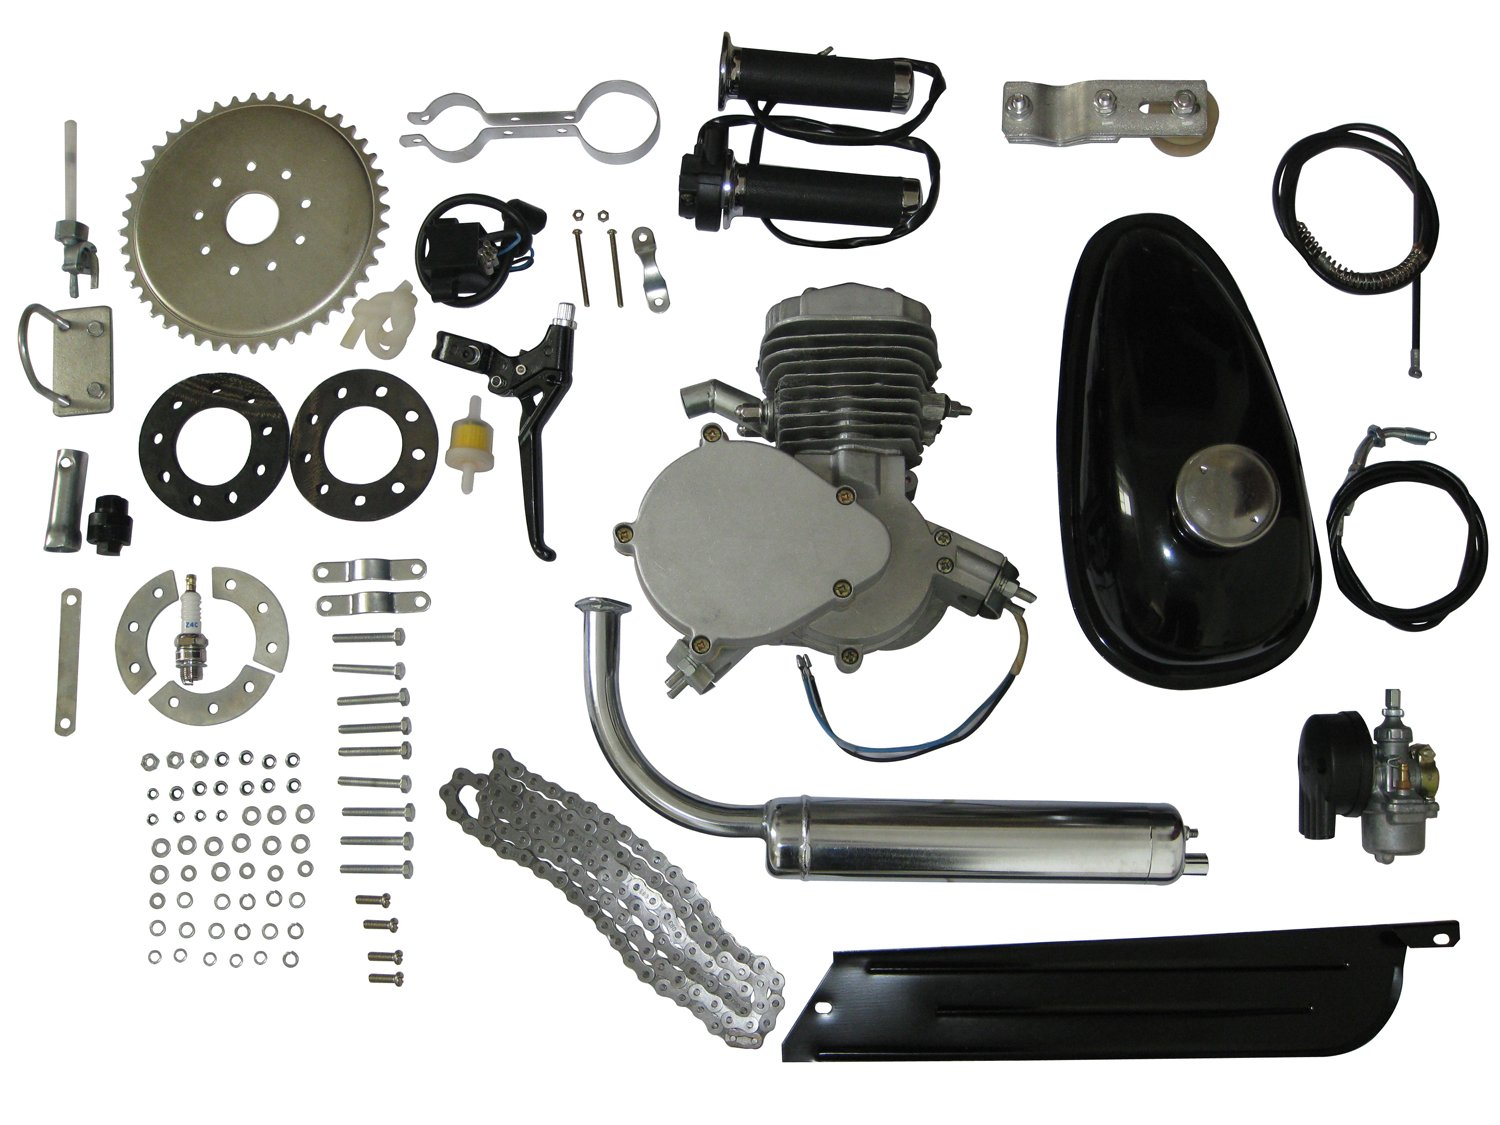 DEEP TOUCH DT80 80cc 2-Cycle Petrol Gas Engine Motor Kit with Angle Fire Slant Head for Motorized Bicycle Bike